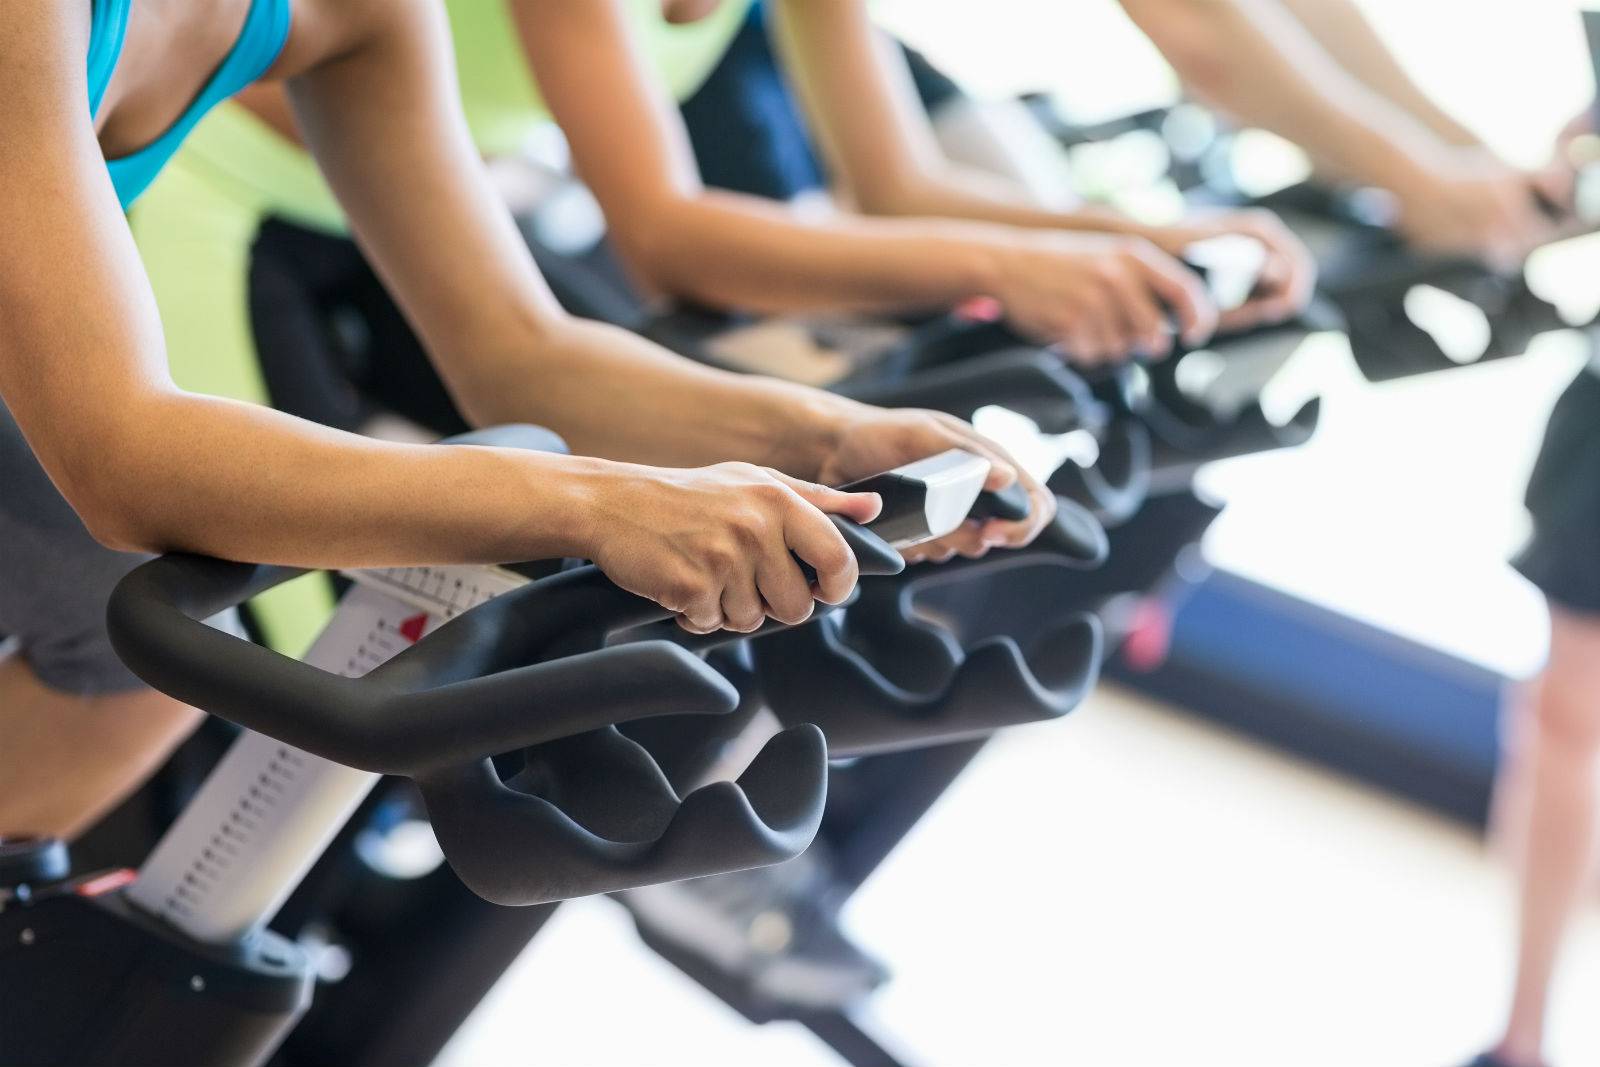 Motivational Cues for Group Fitness